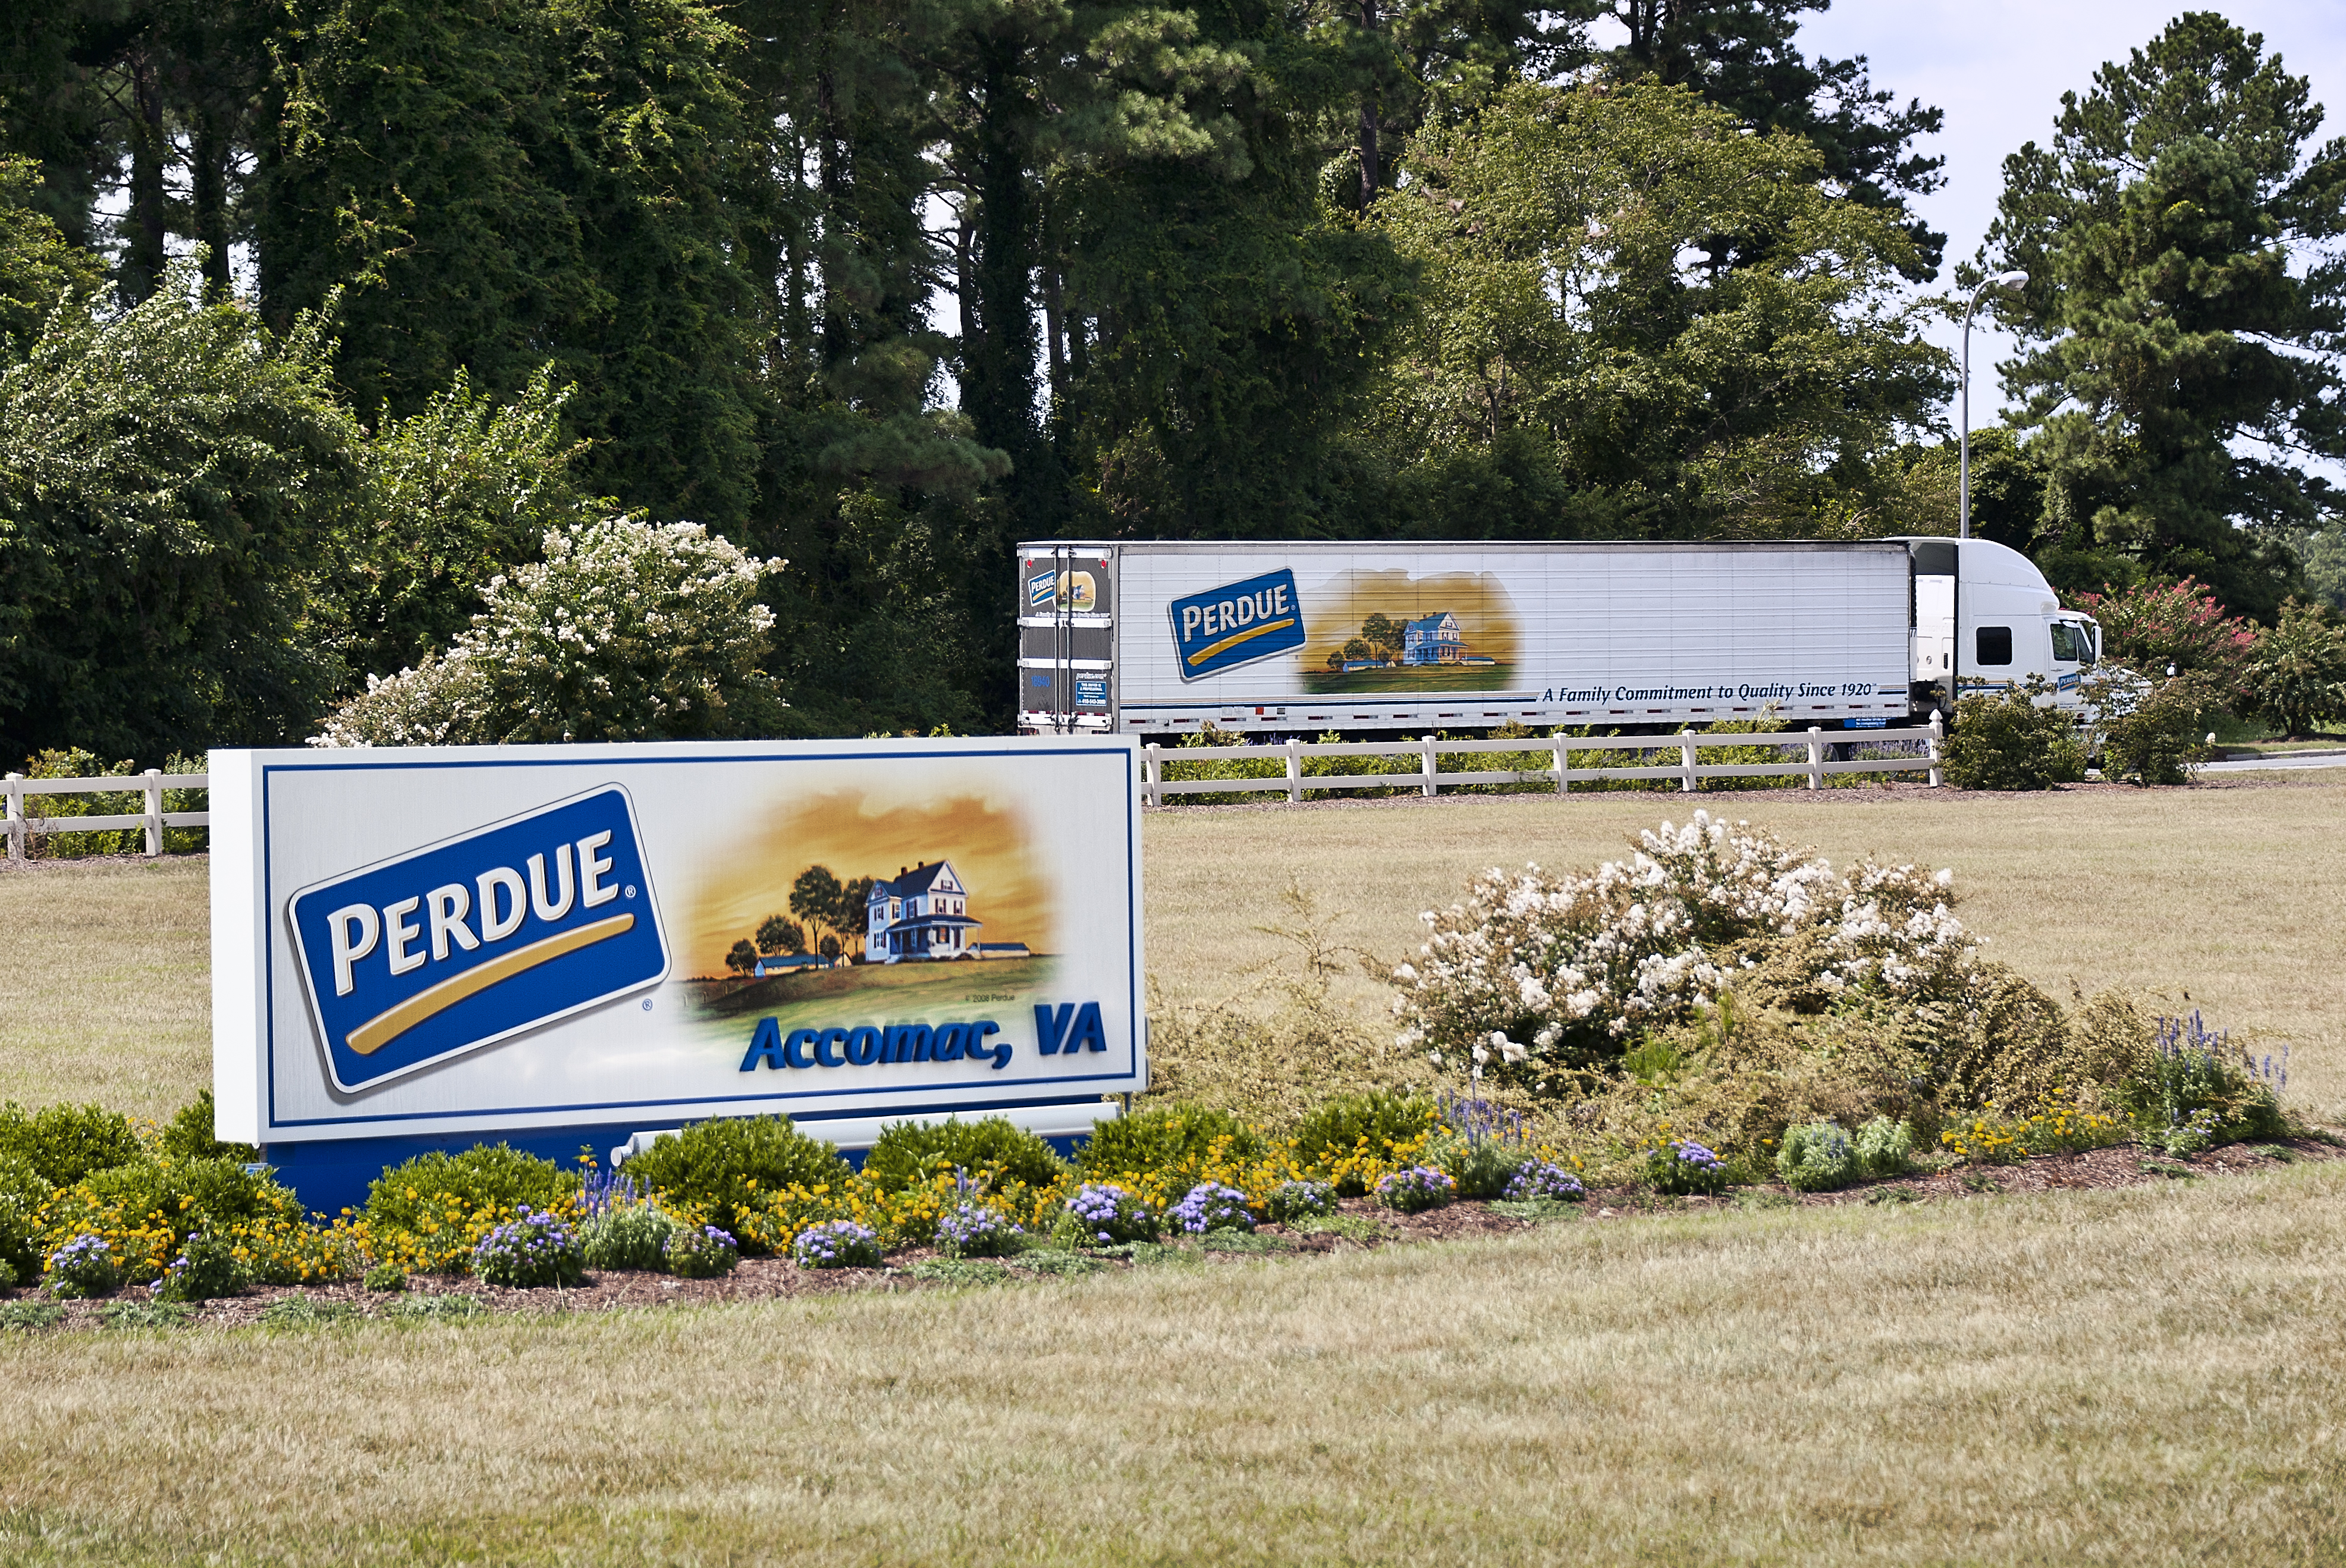 Perdue farms and chicken facility